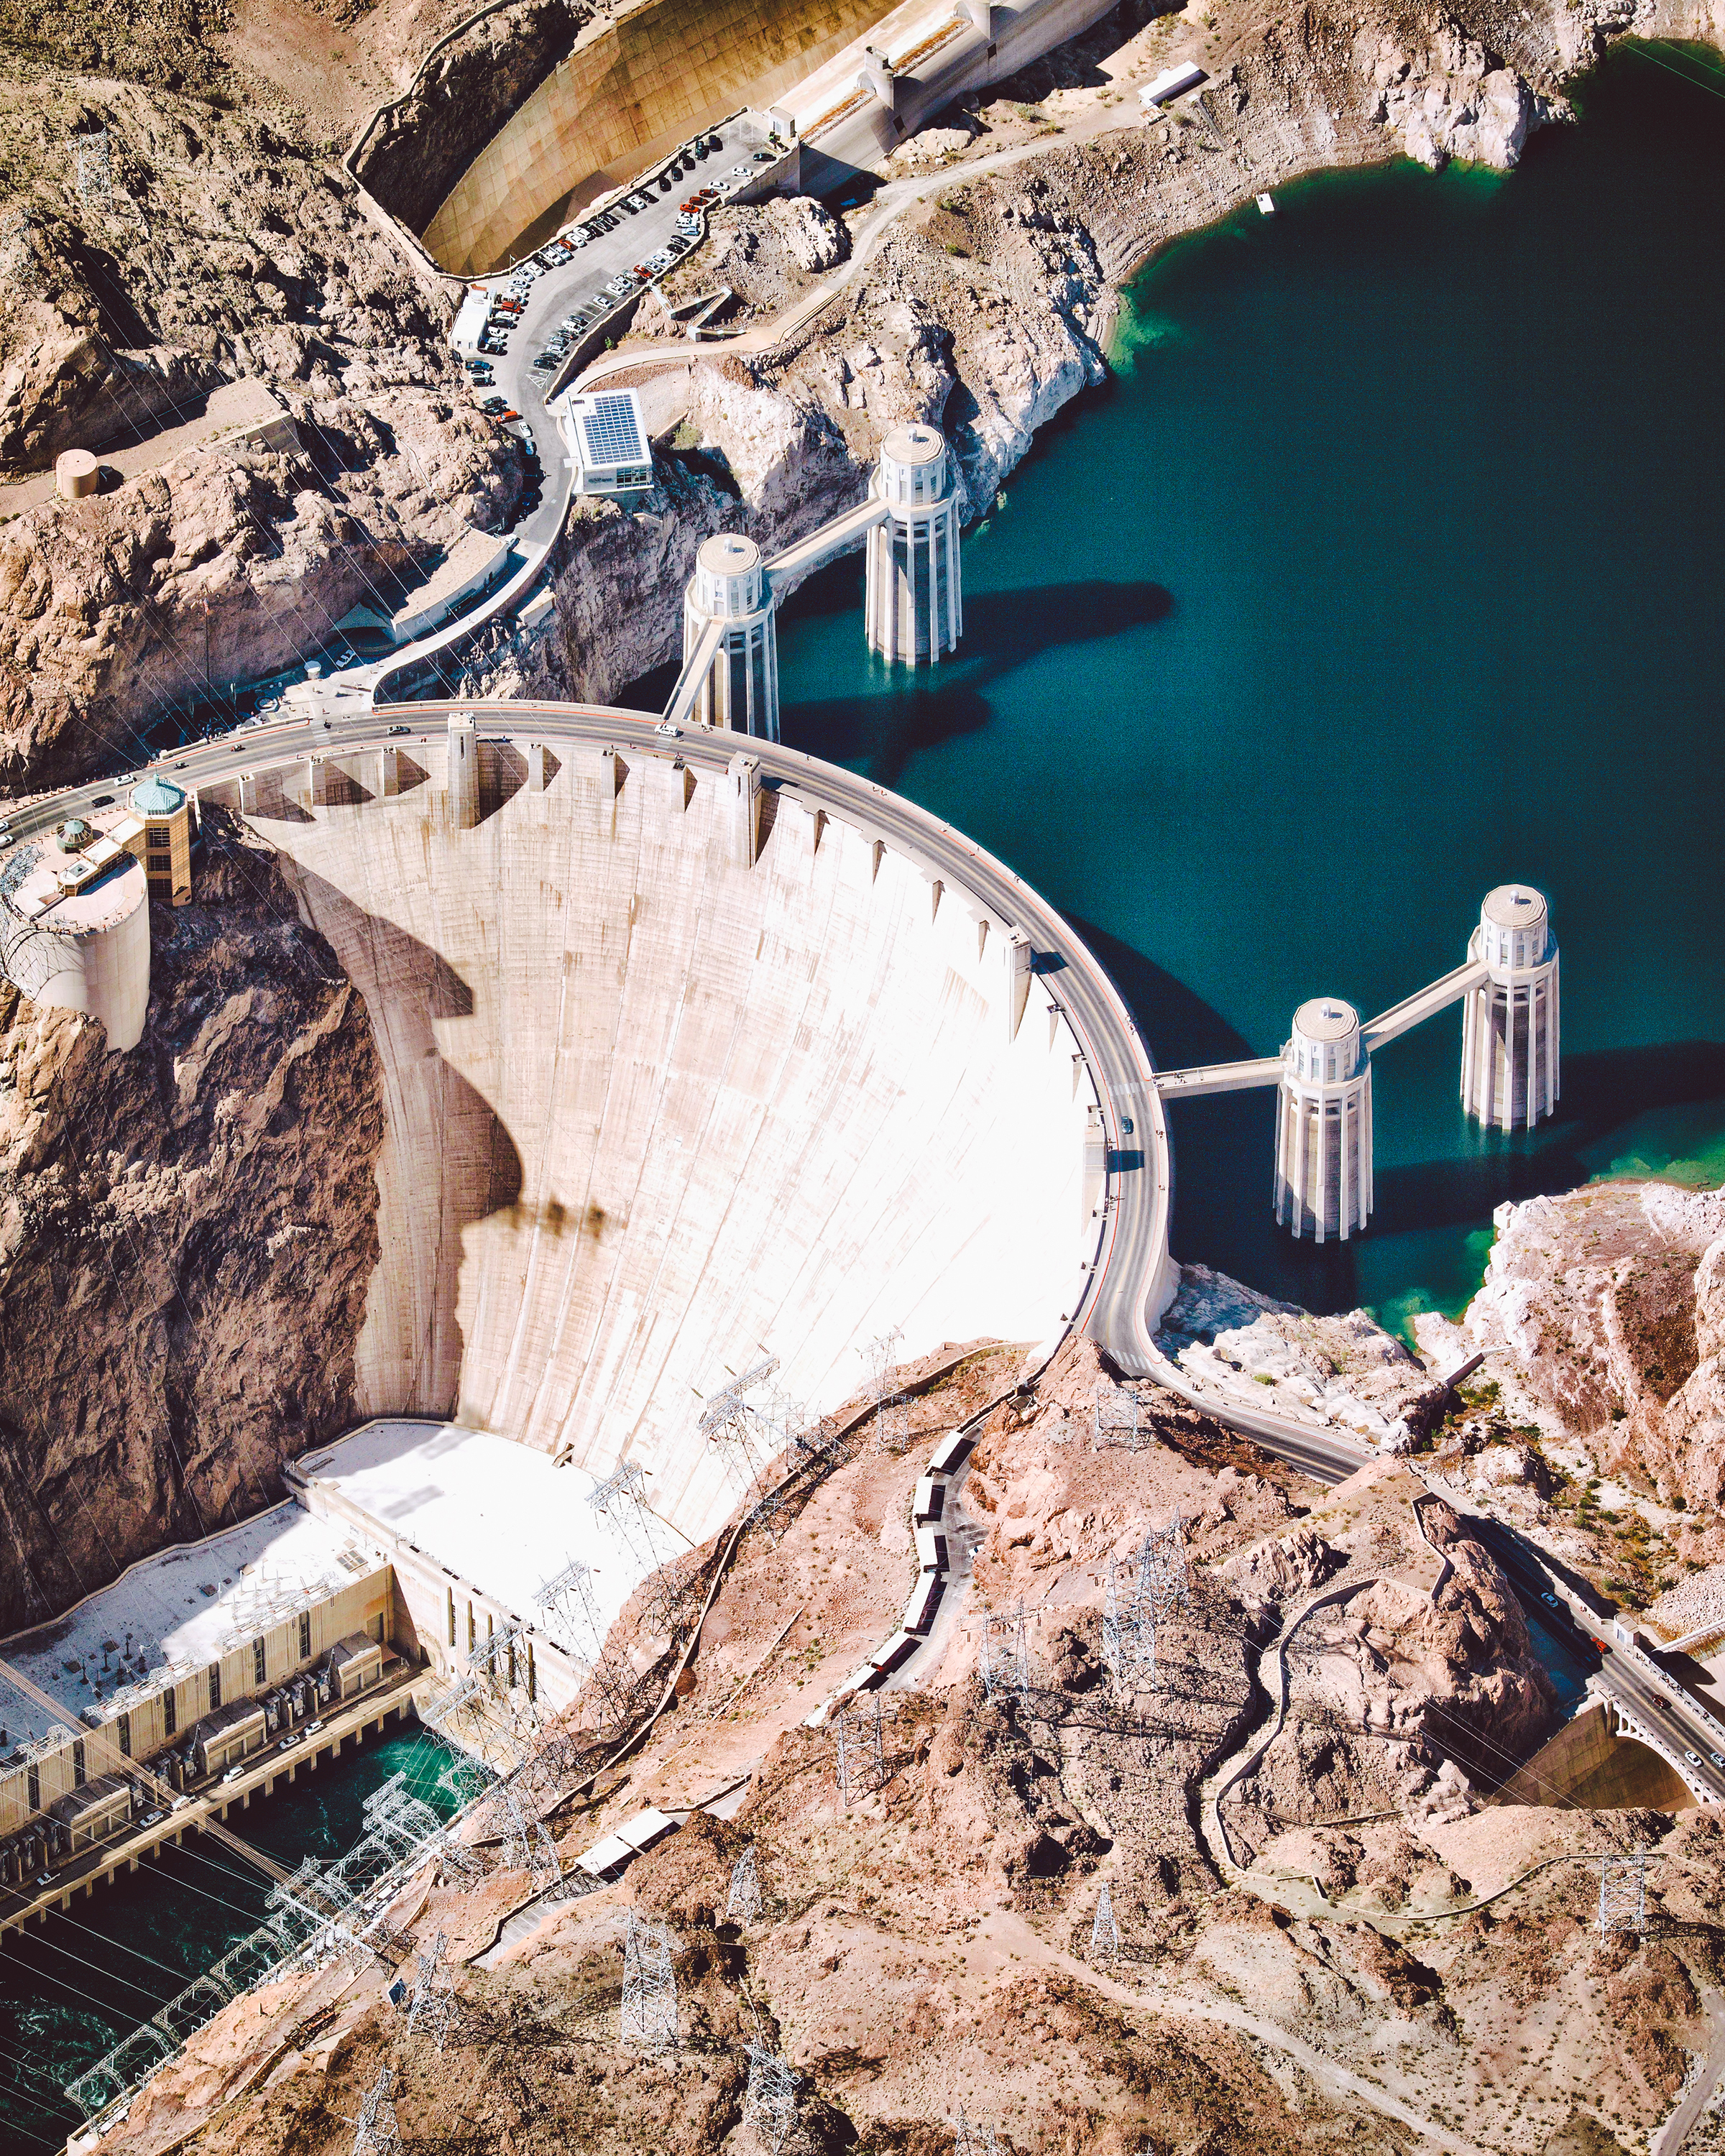 """The Hoover Dam is a concrete arch-gravity dam in the Black Canyon of the Colorado River, situated on the border of Nevada and Arizona. Standing 726.4 feet (221.4 m) tall and 1,244 feet (376 m) long, it impounds Lake Mead, the largest reservoir in the United States by volume. Construction of the Hoover Dam between 1931 and 1936 served as a massive public works project of the Great Depression, employing thousands of workers — in fact, when the dam was authorized, nearly 20,000 unemployed individuals flocked to Las Vegas (a city of just 5,000 at the time) in hopes of finding work.  36°00'56.0""""N, 114°44'16.0""""W  Source imagery: Nearmap"""